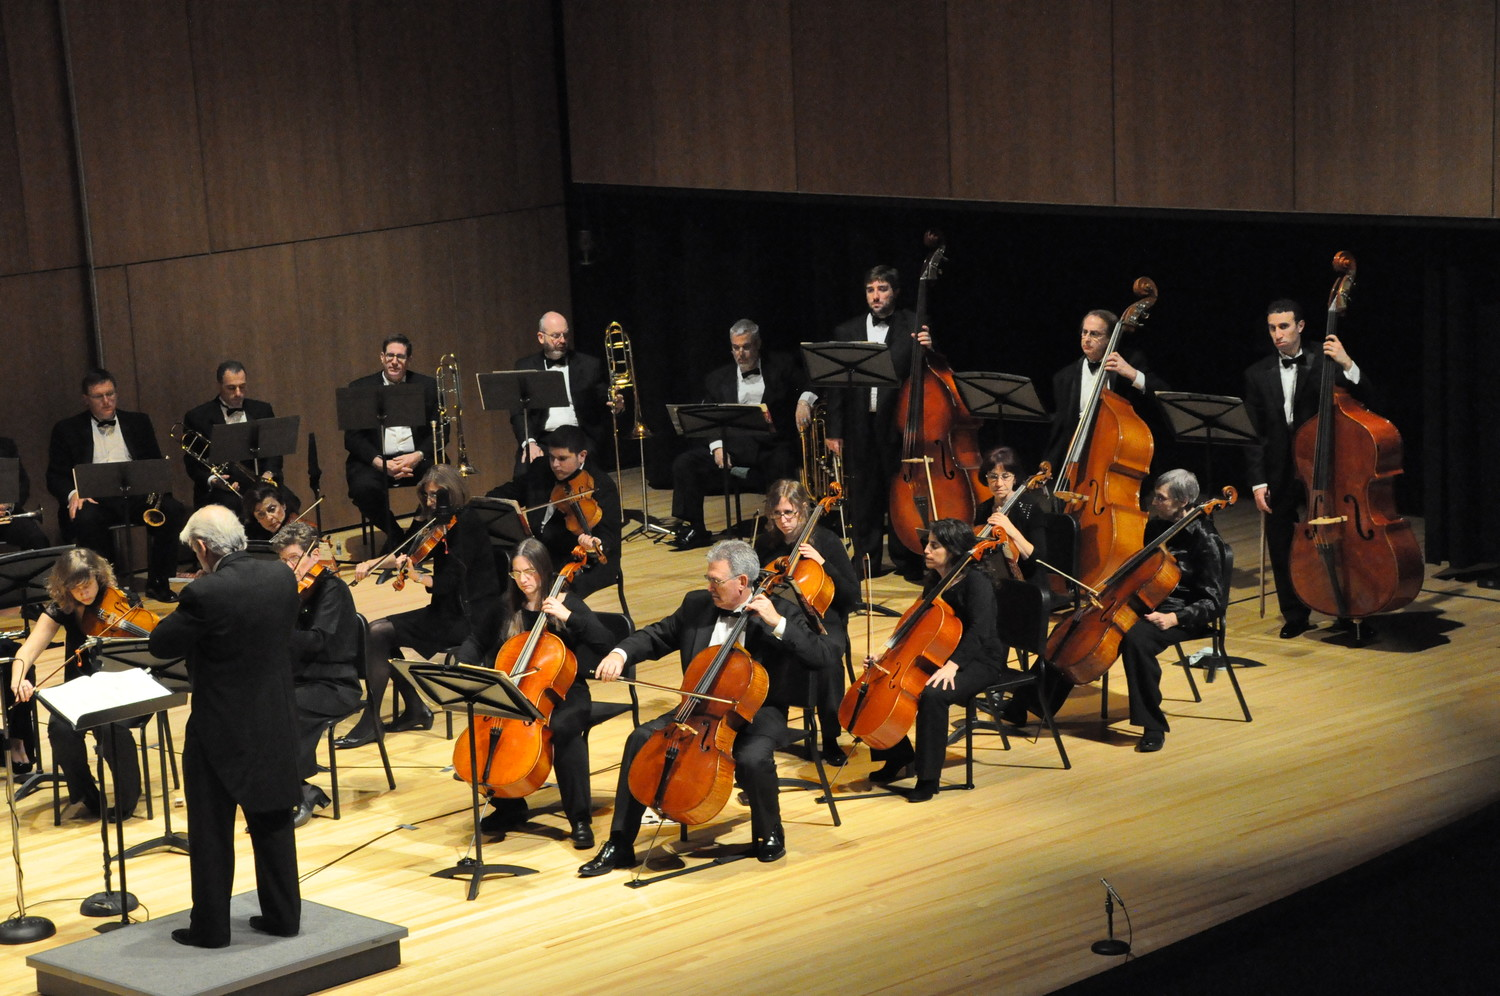 The South Shore Symphony appears at the Madison Theatre on Nov. 18.